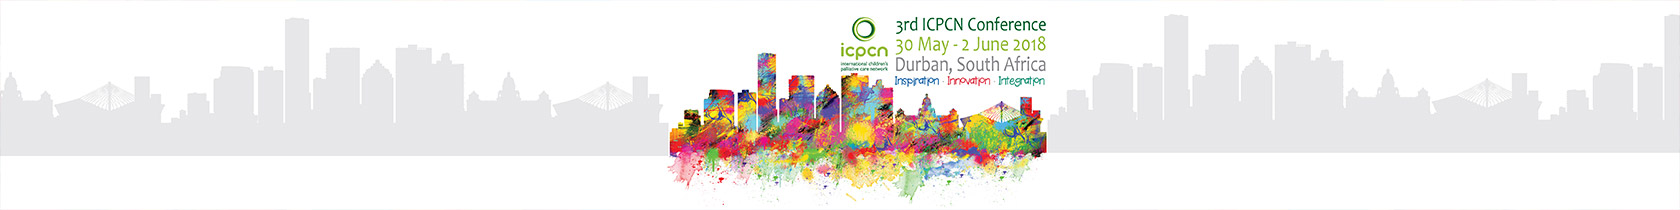 Registration payment options - ICPCN Conference Durban